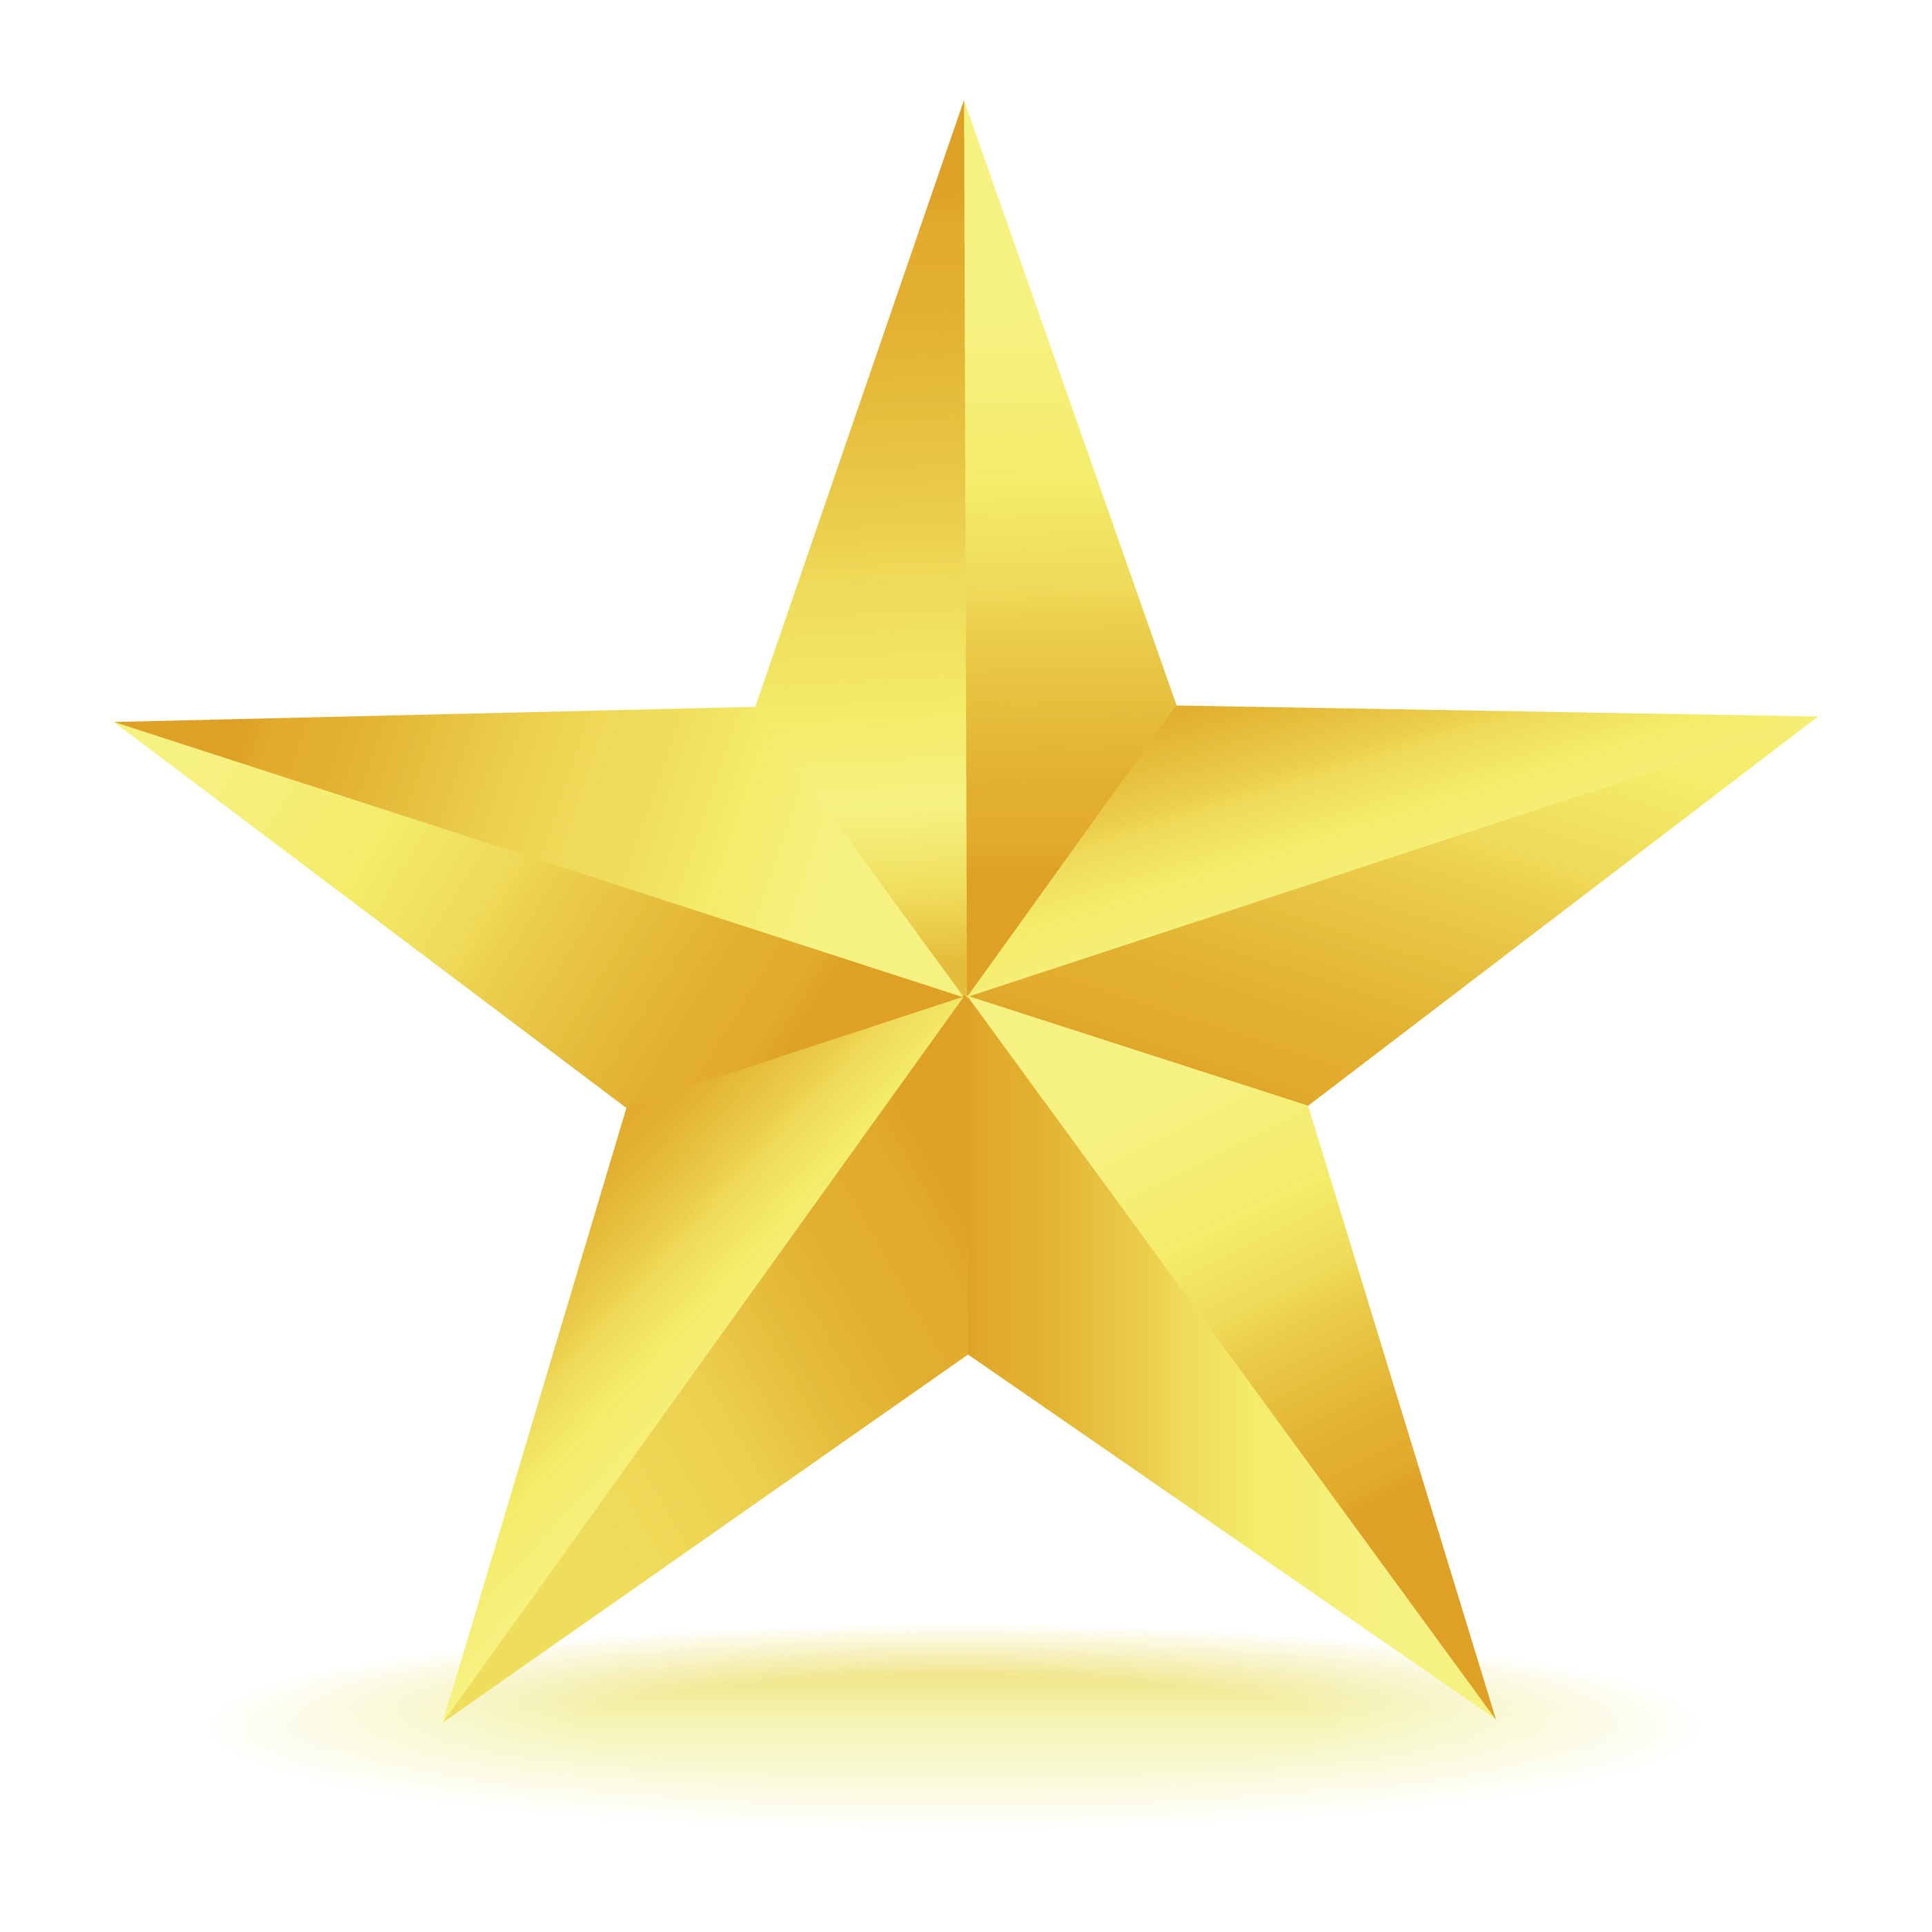 gold star free clipart 1 star images free clip art 2800 2800 fit rh fitisafeministissue com Star Clip Art Small Star Clip Art